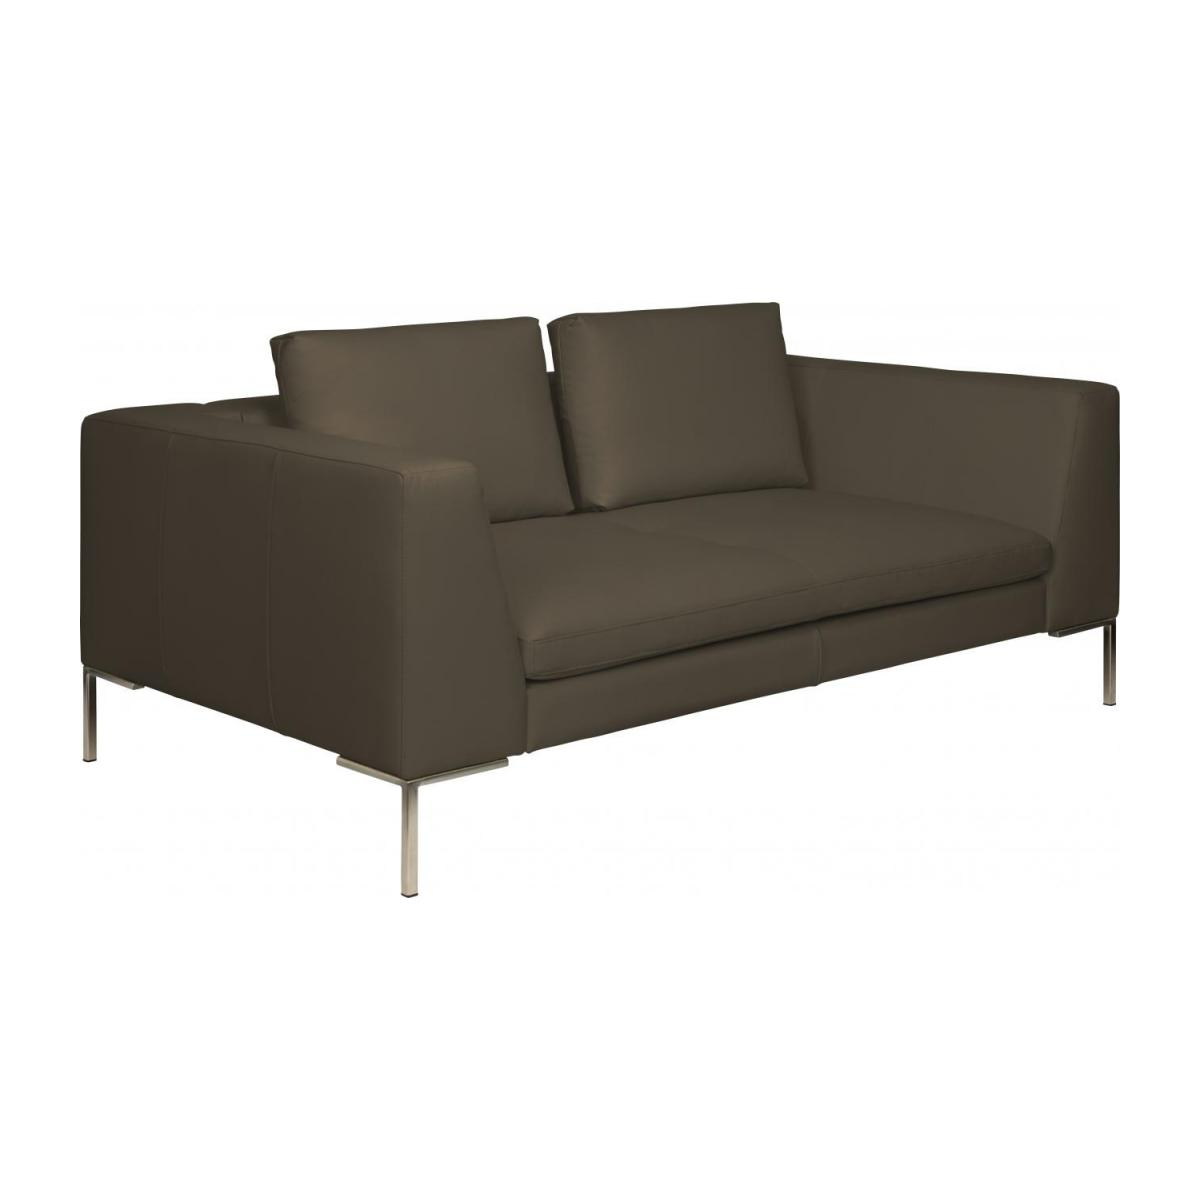 2 seater sofa in Eton veined leather, stone n°1